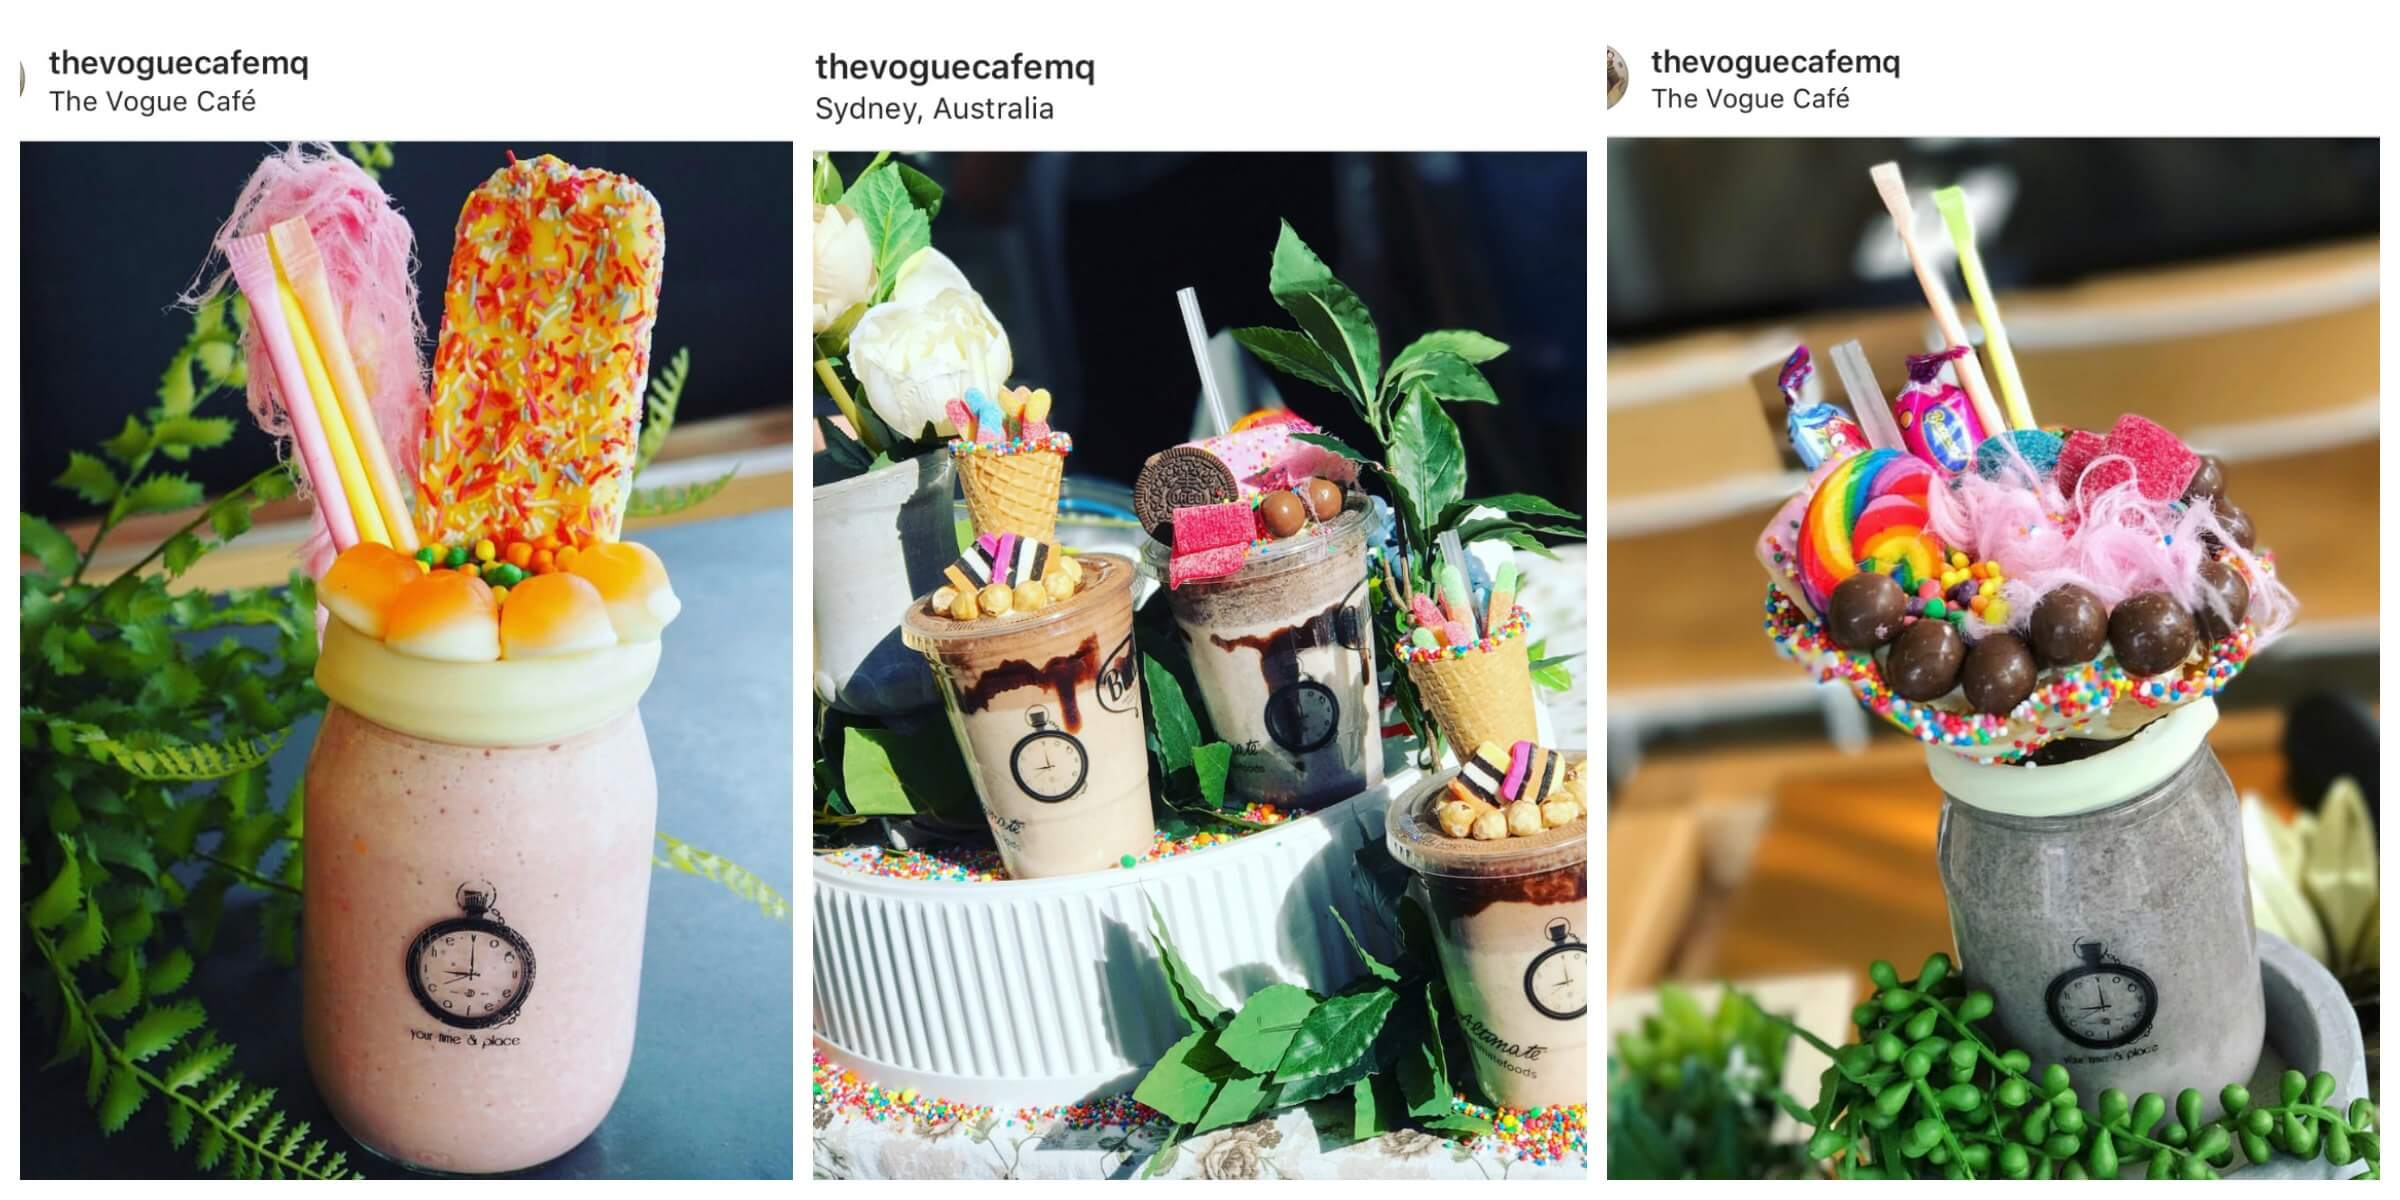 Most Instagrammable Cafes in Sydney, Vogue Cafe